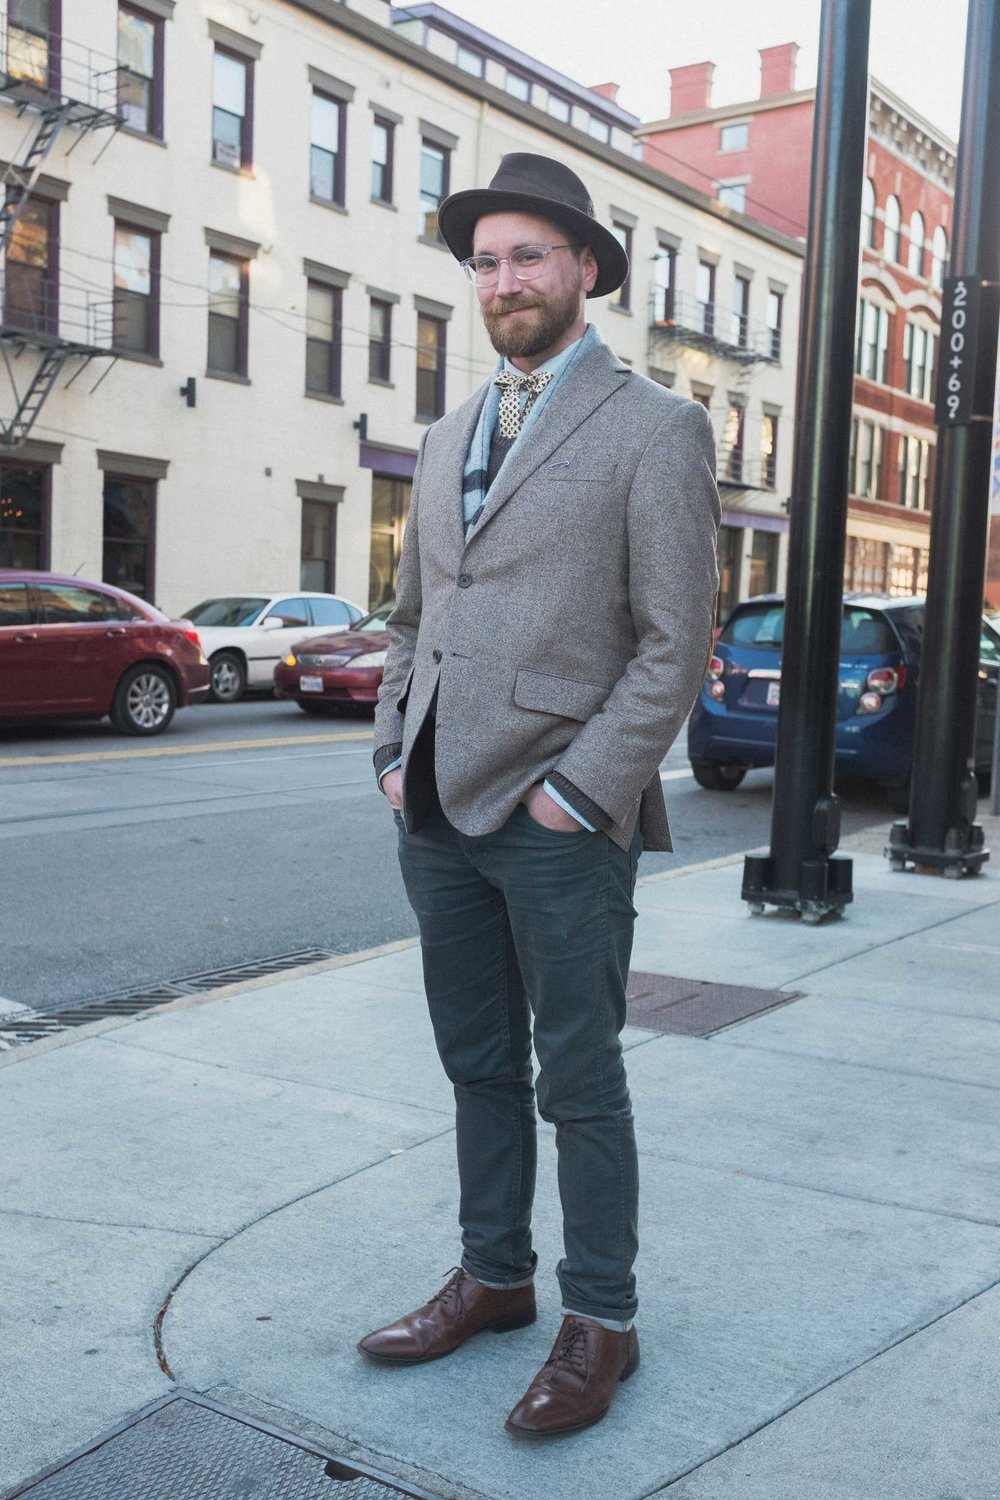 Matthew shows us how to dress for an evening out in the fall.